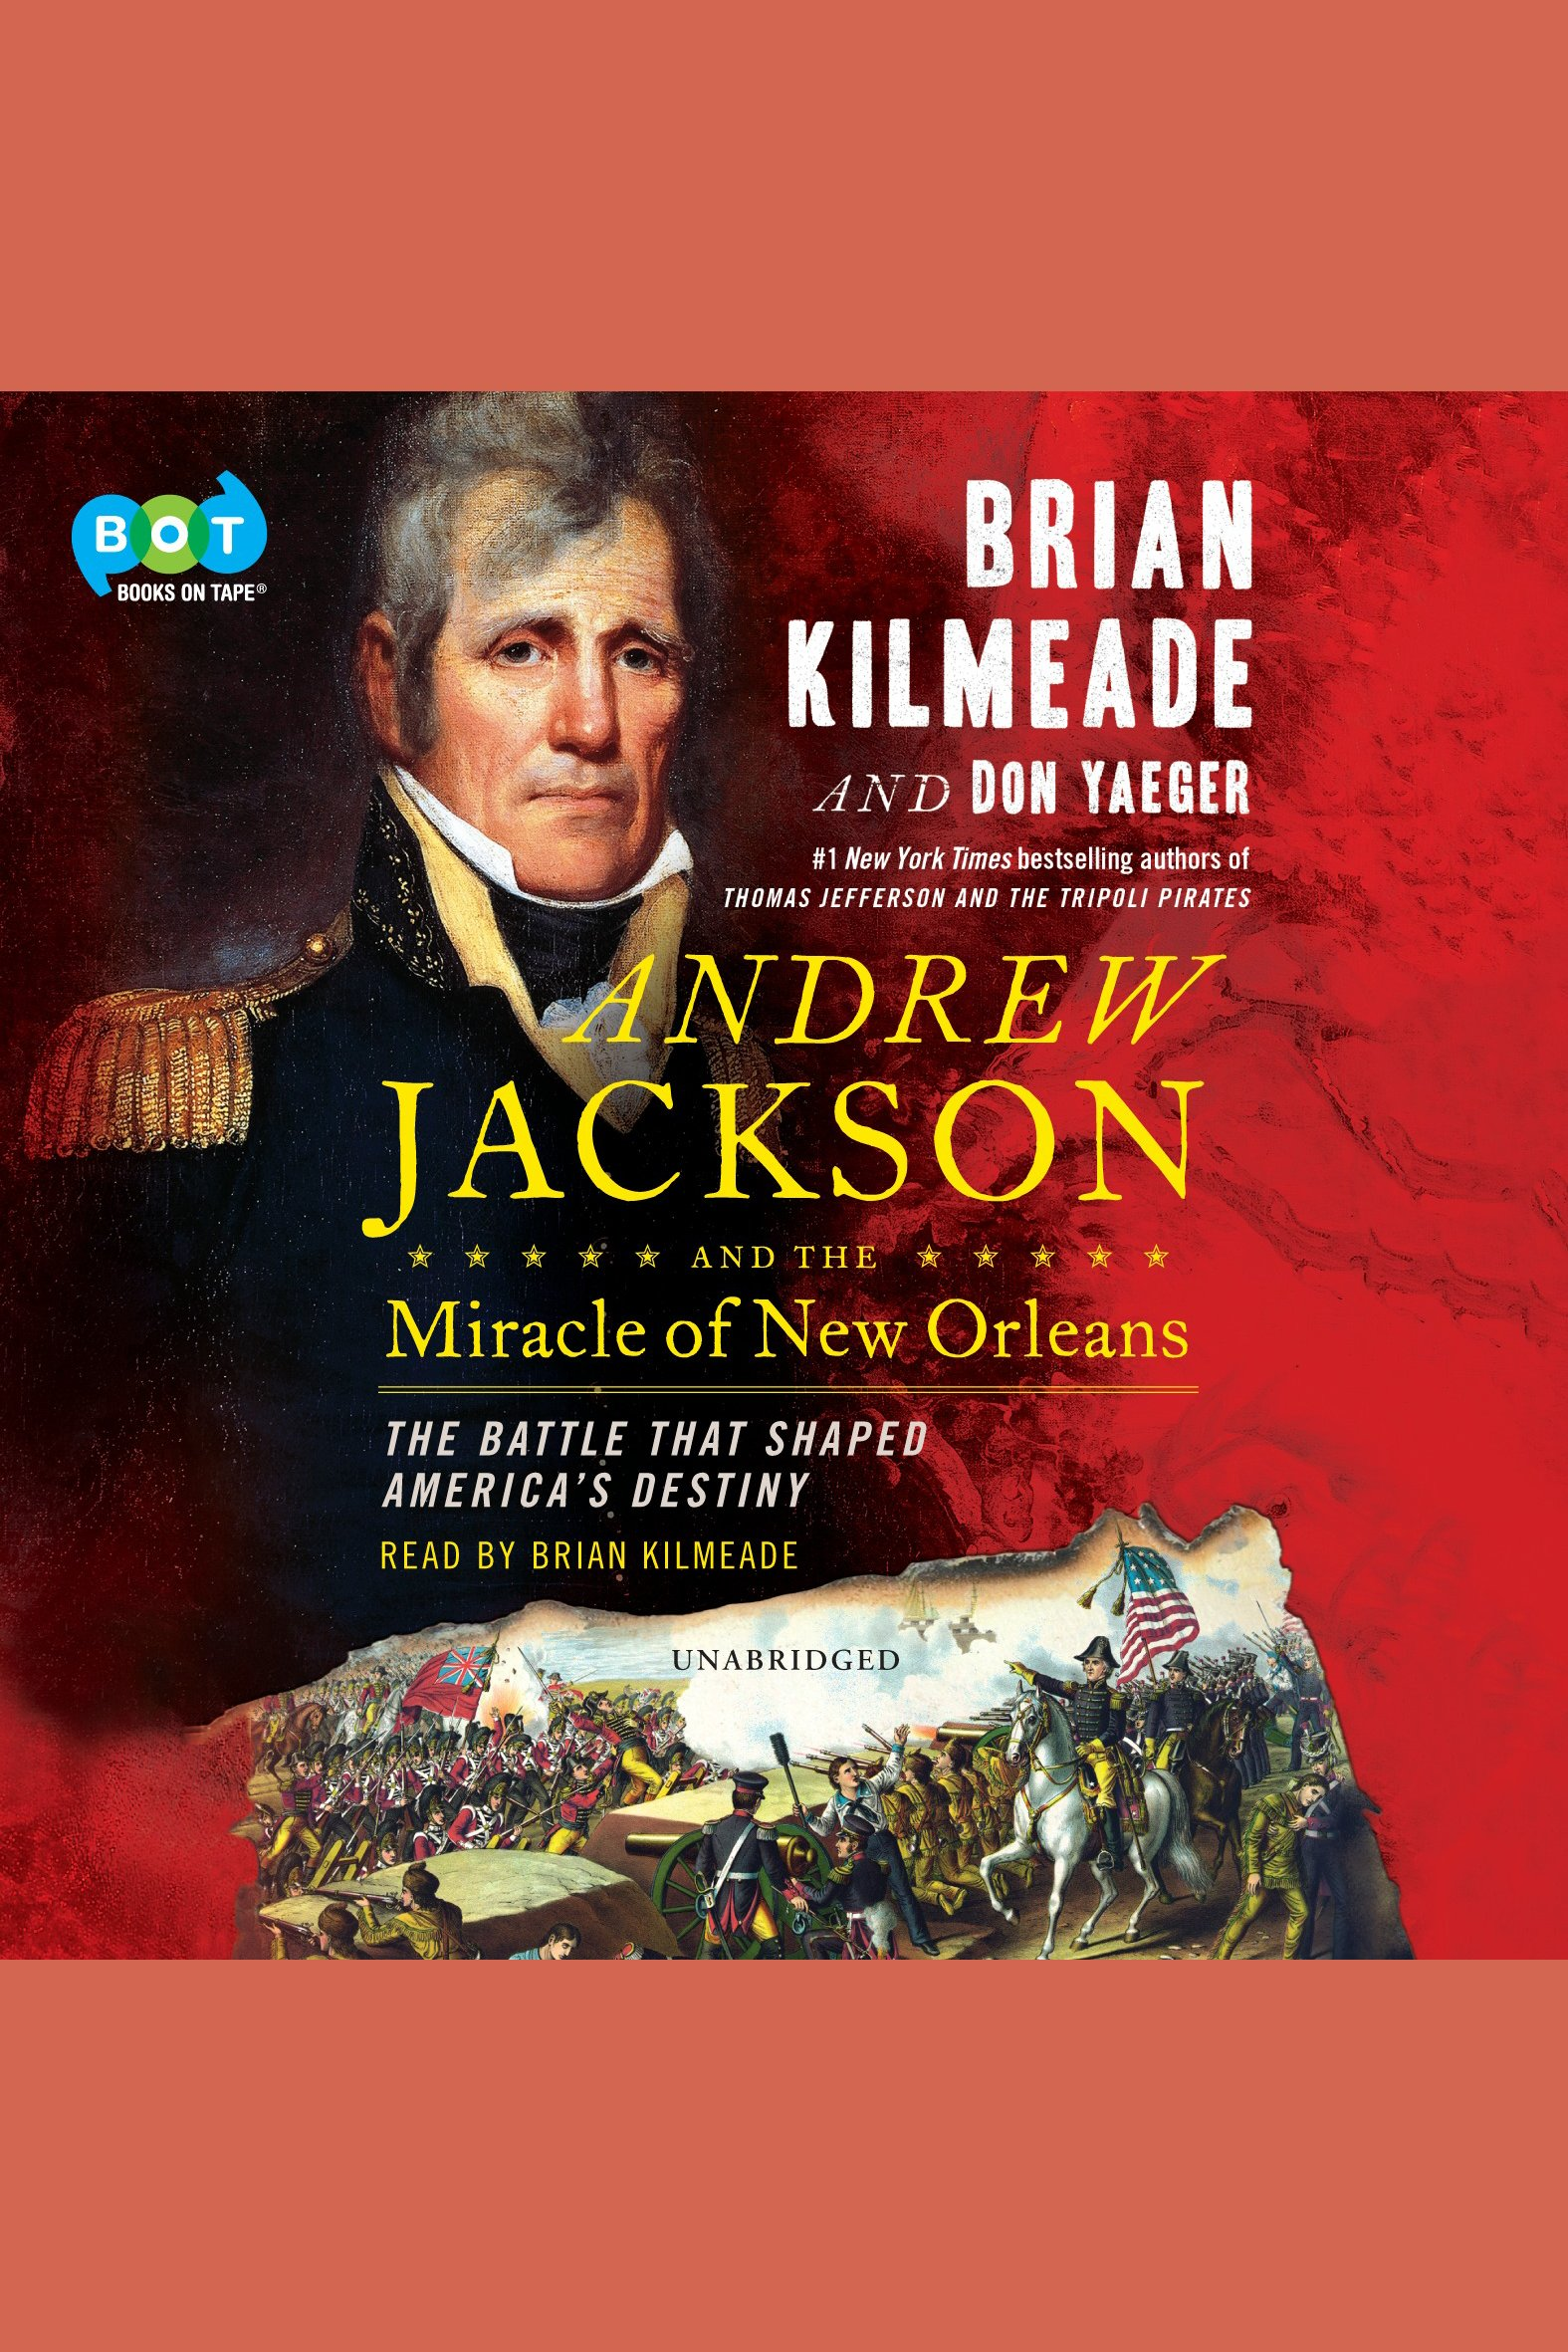 Andrew Jackson [EAUDIOBOOK] and the Miracle of New Orleans The Battle That Shaped America's Destiny